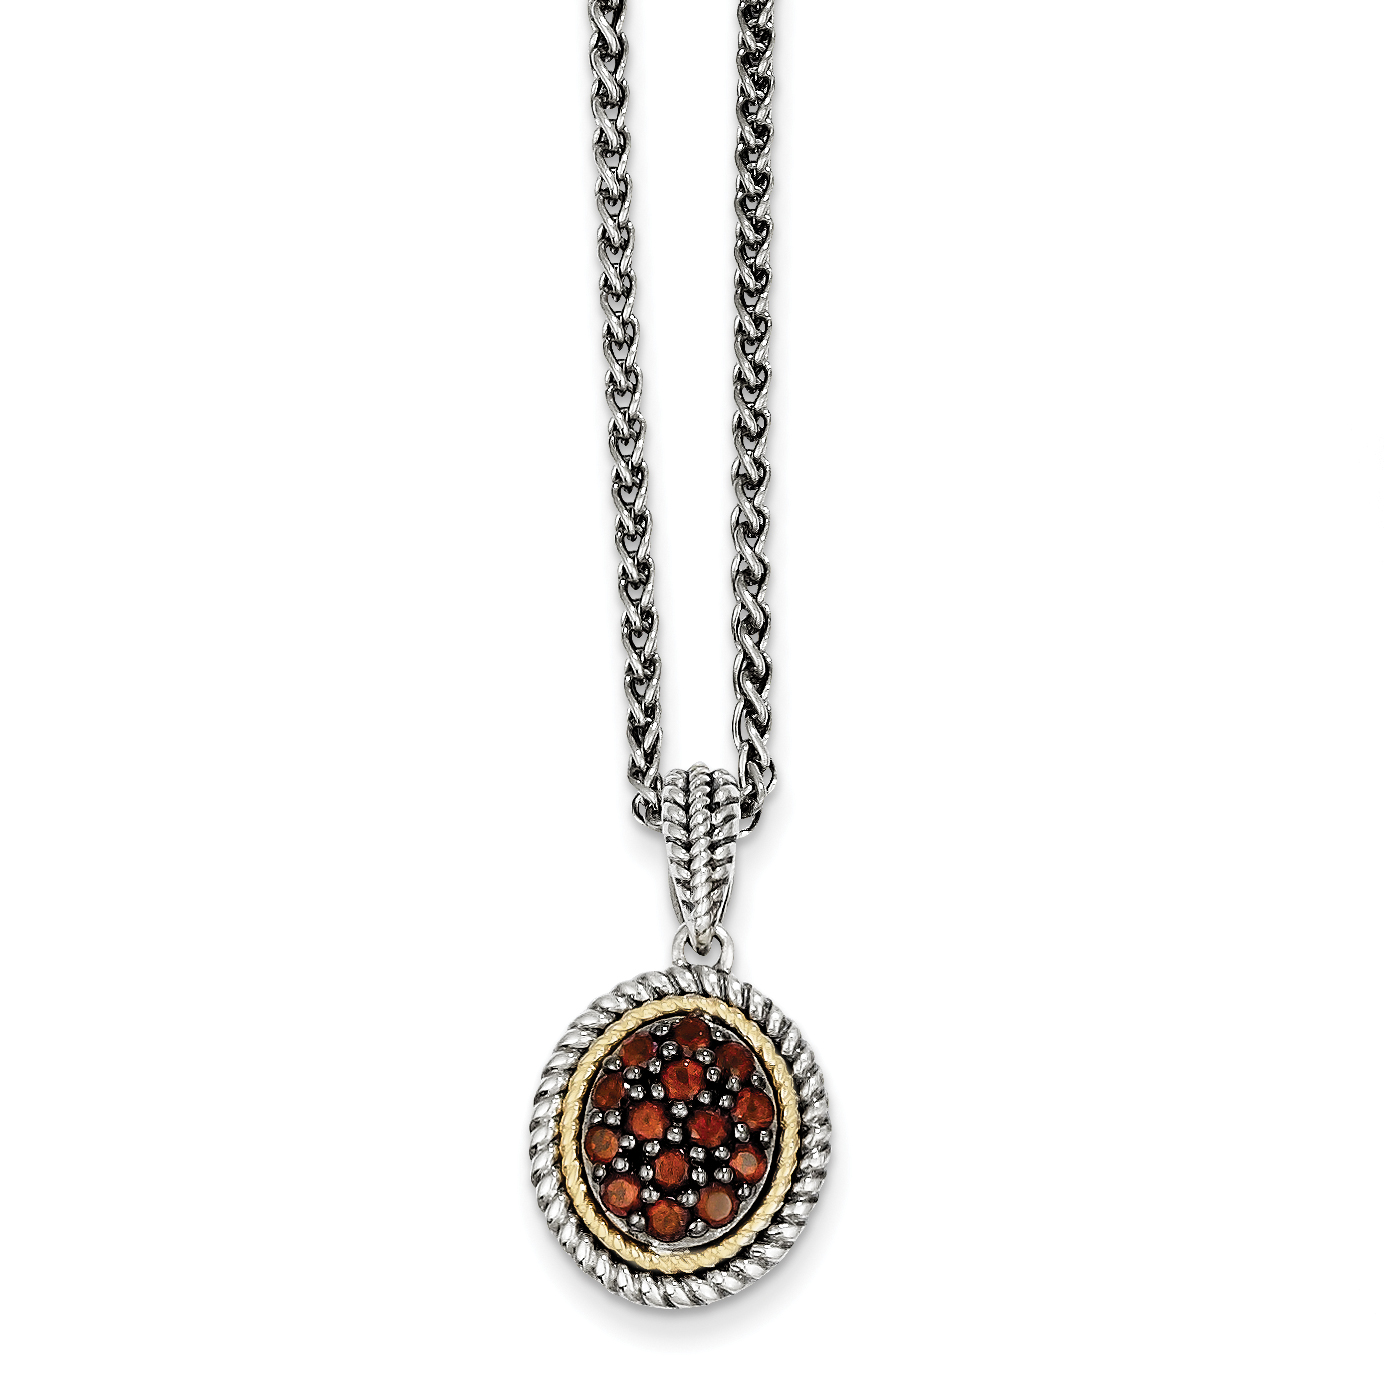 Sterling Silver w 14k Garnet Necklace QTC658 by Shey Couture